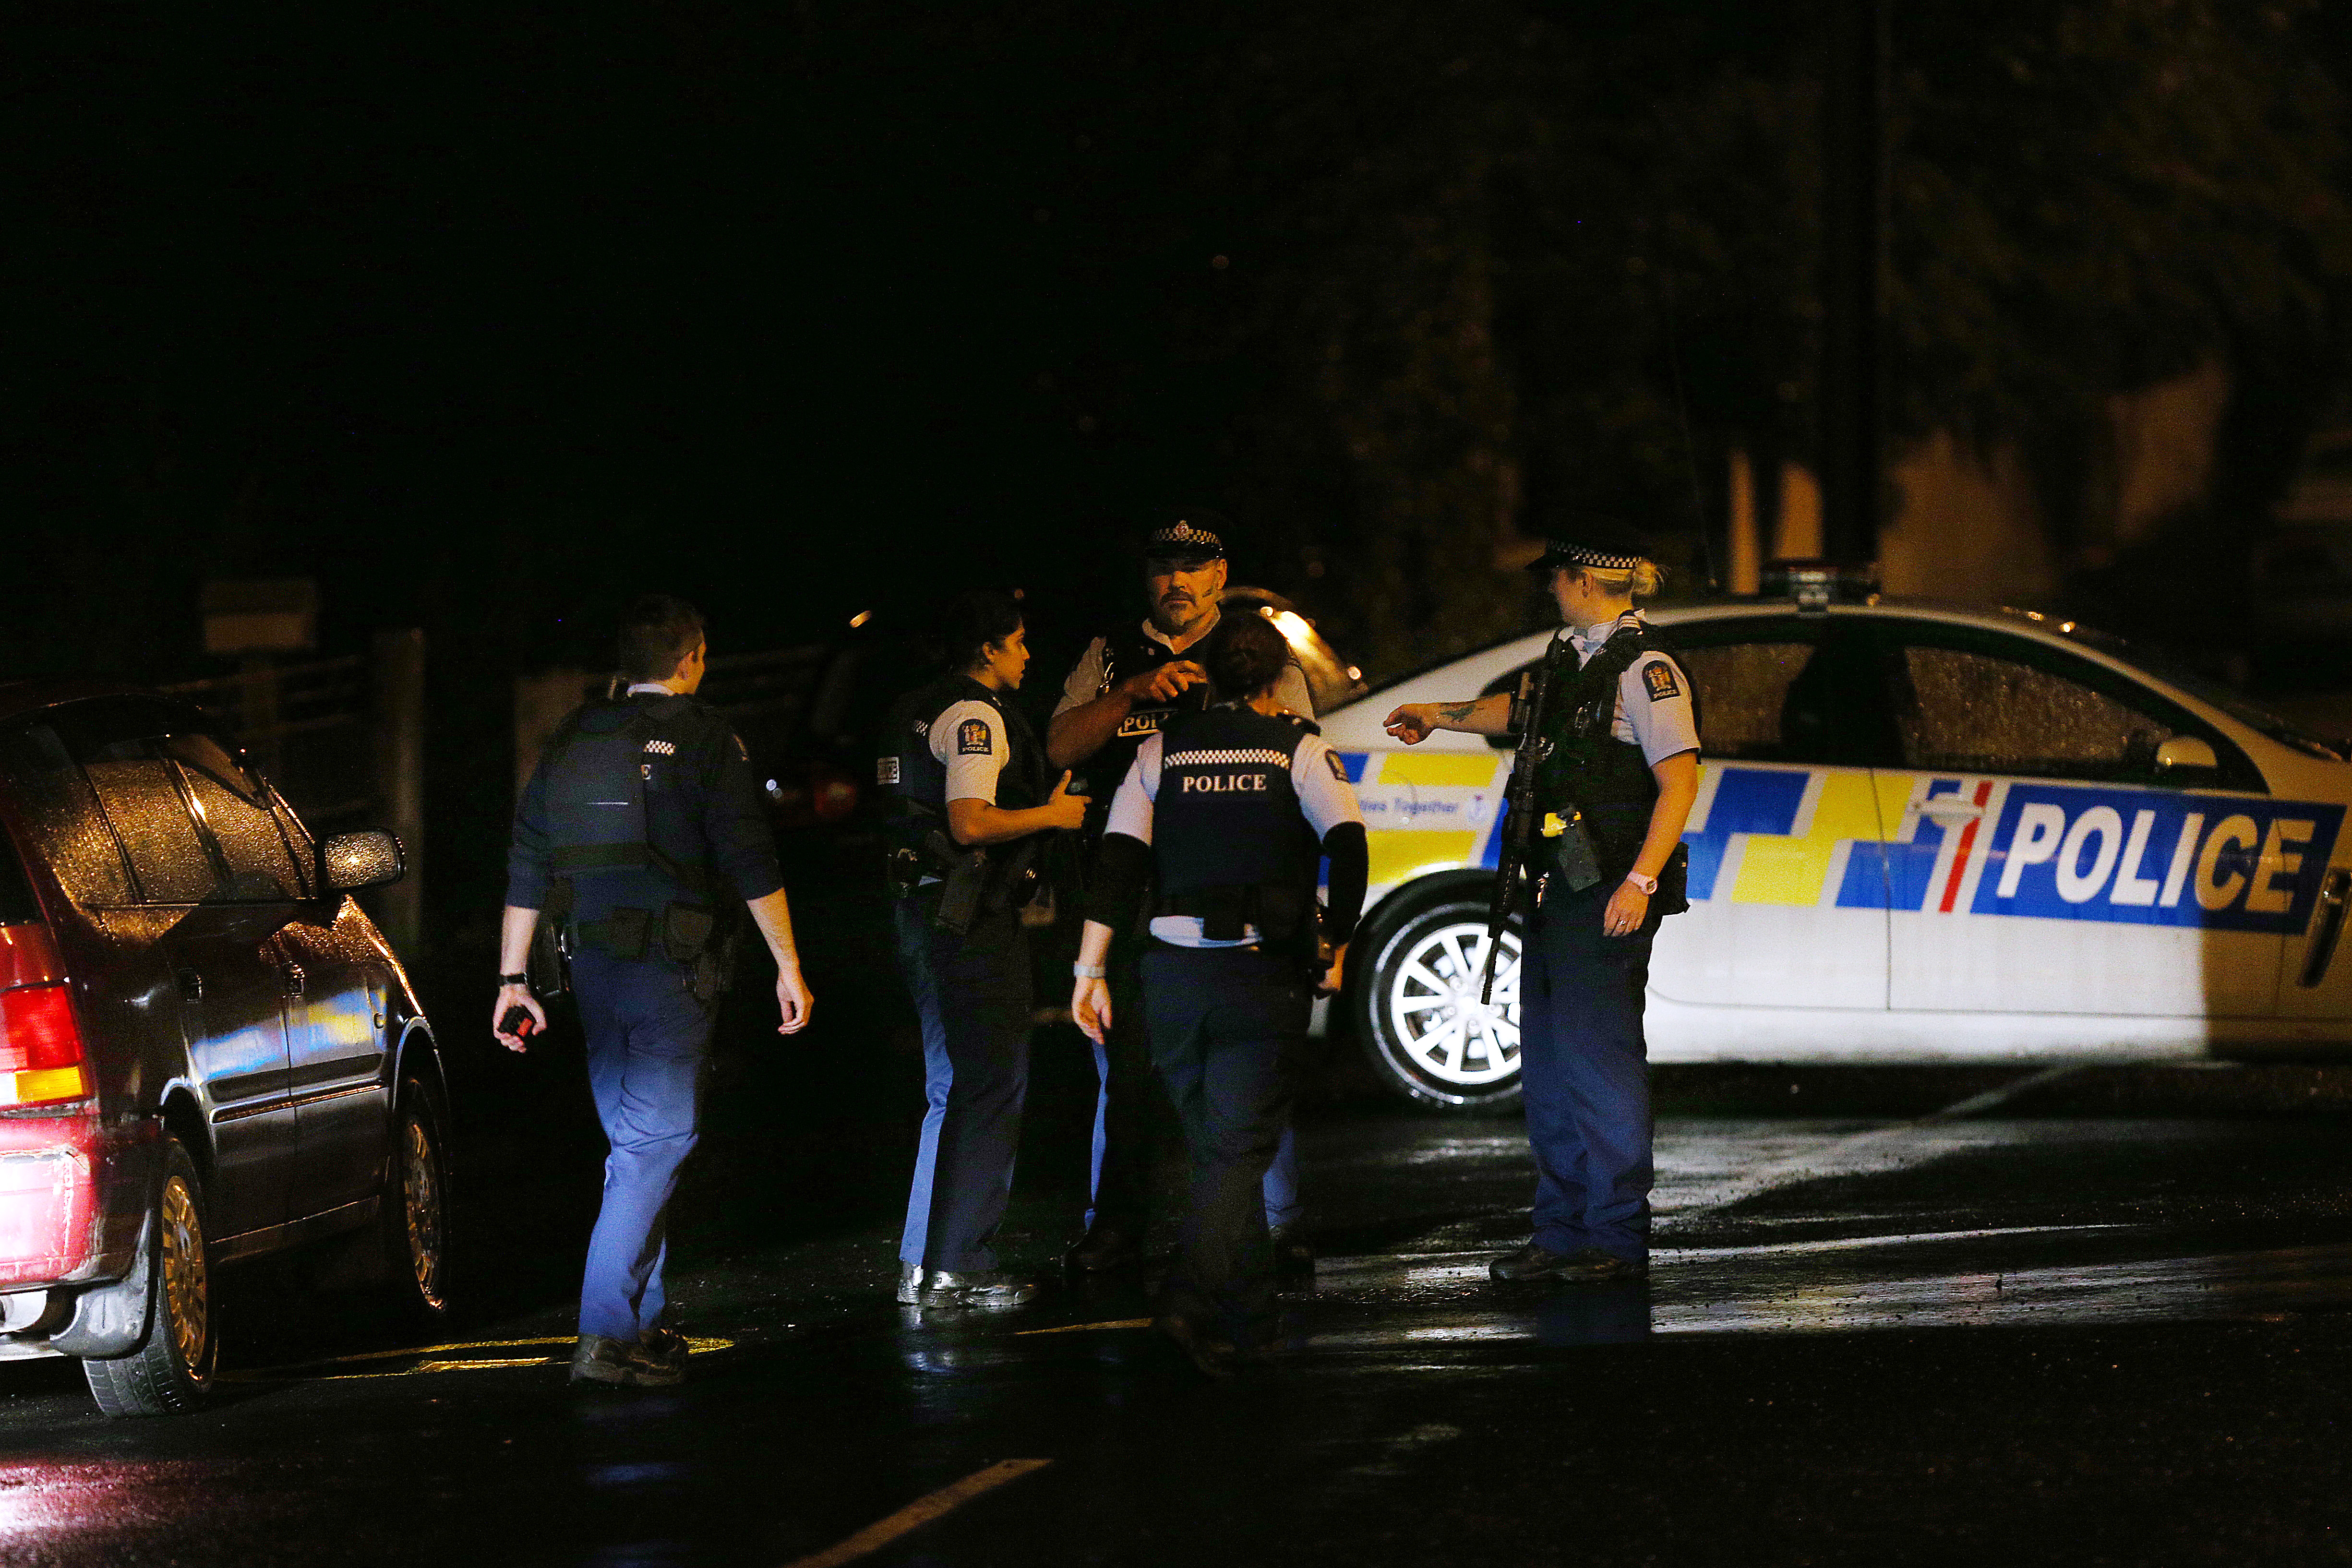 Police investigate a property at Somerville Street on March 15, 2019 in Dunedin, New Zealand. (Getty Images)